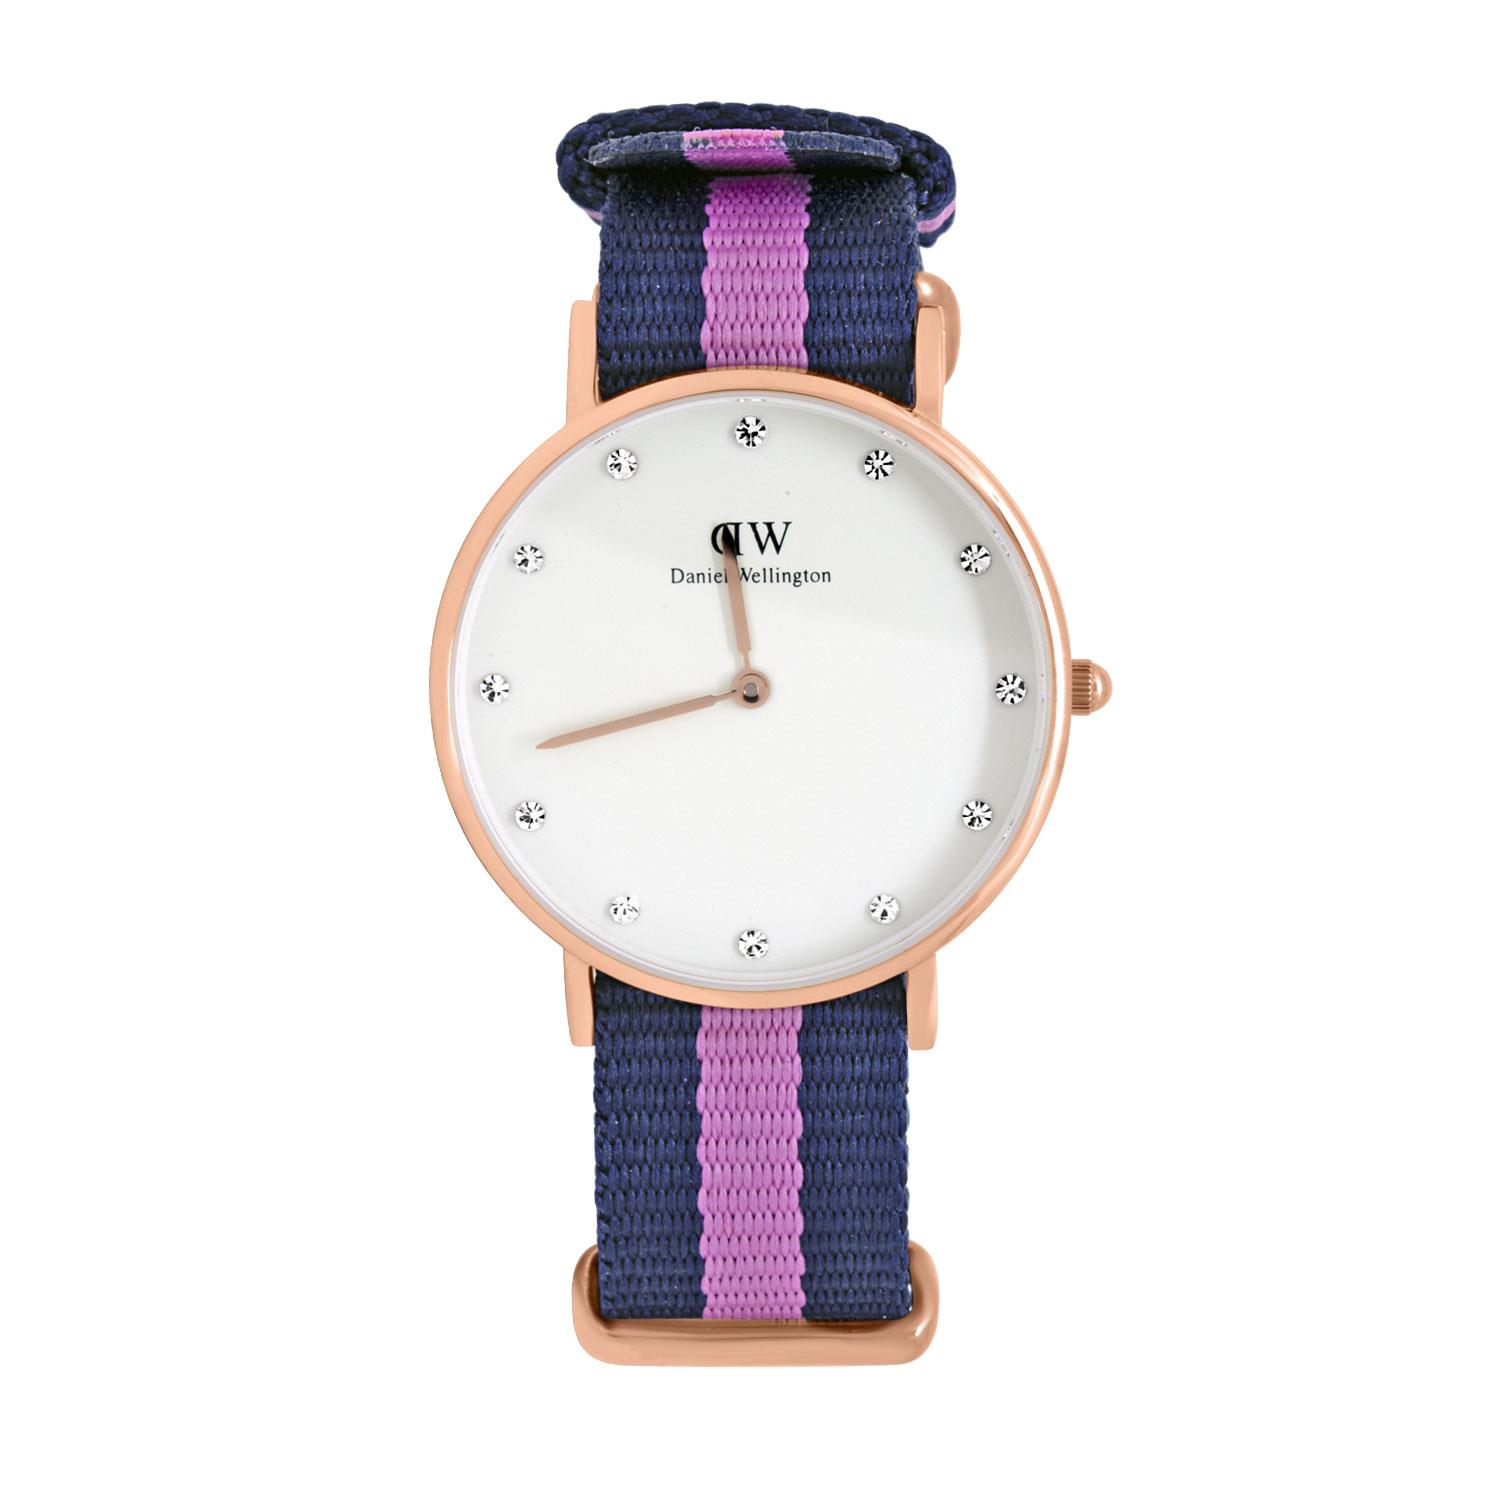 Orologio donna con cassa 34 mm - DANIEL WELLINGTON